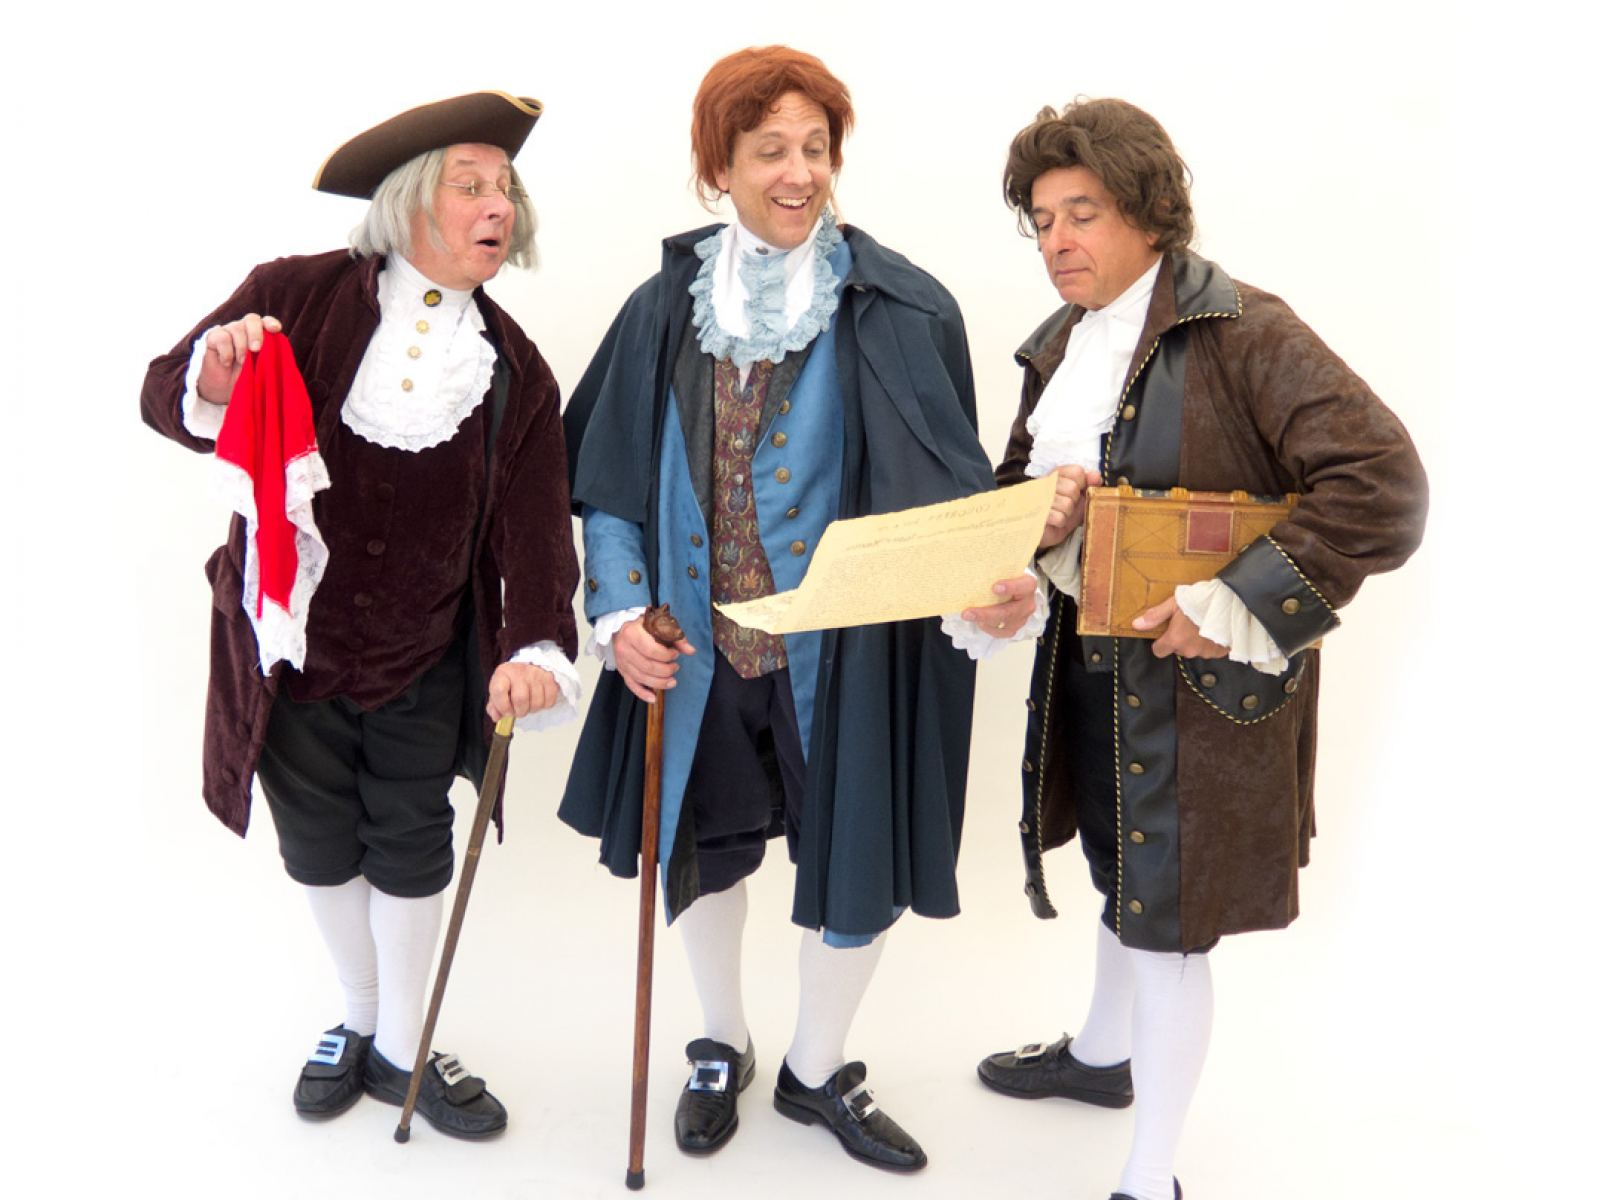 The Confounding Brothers Benjamin Franklin, Thomas Jefferson, and John Adams